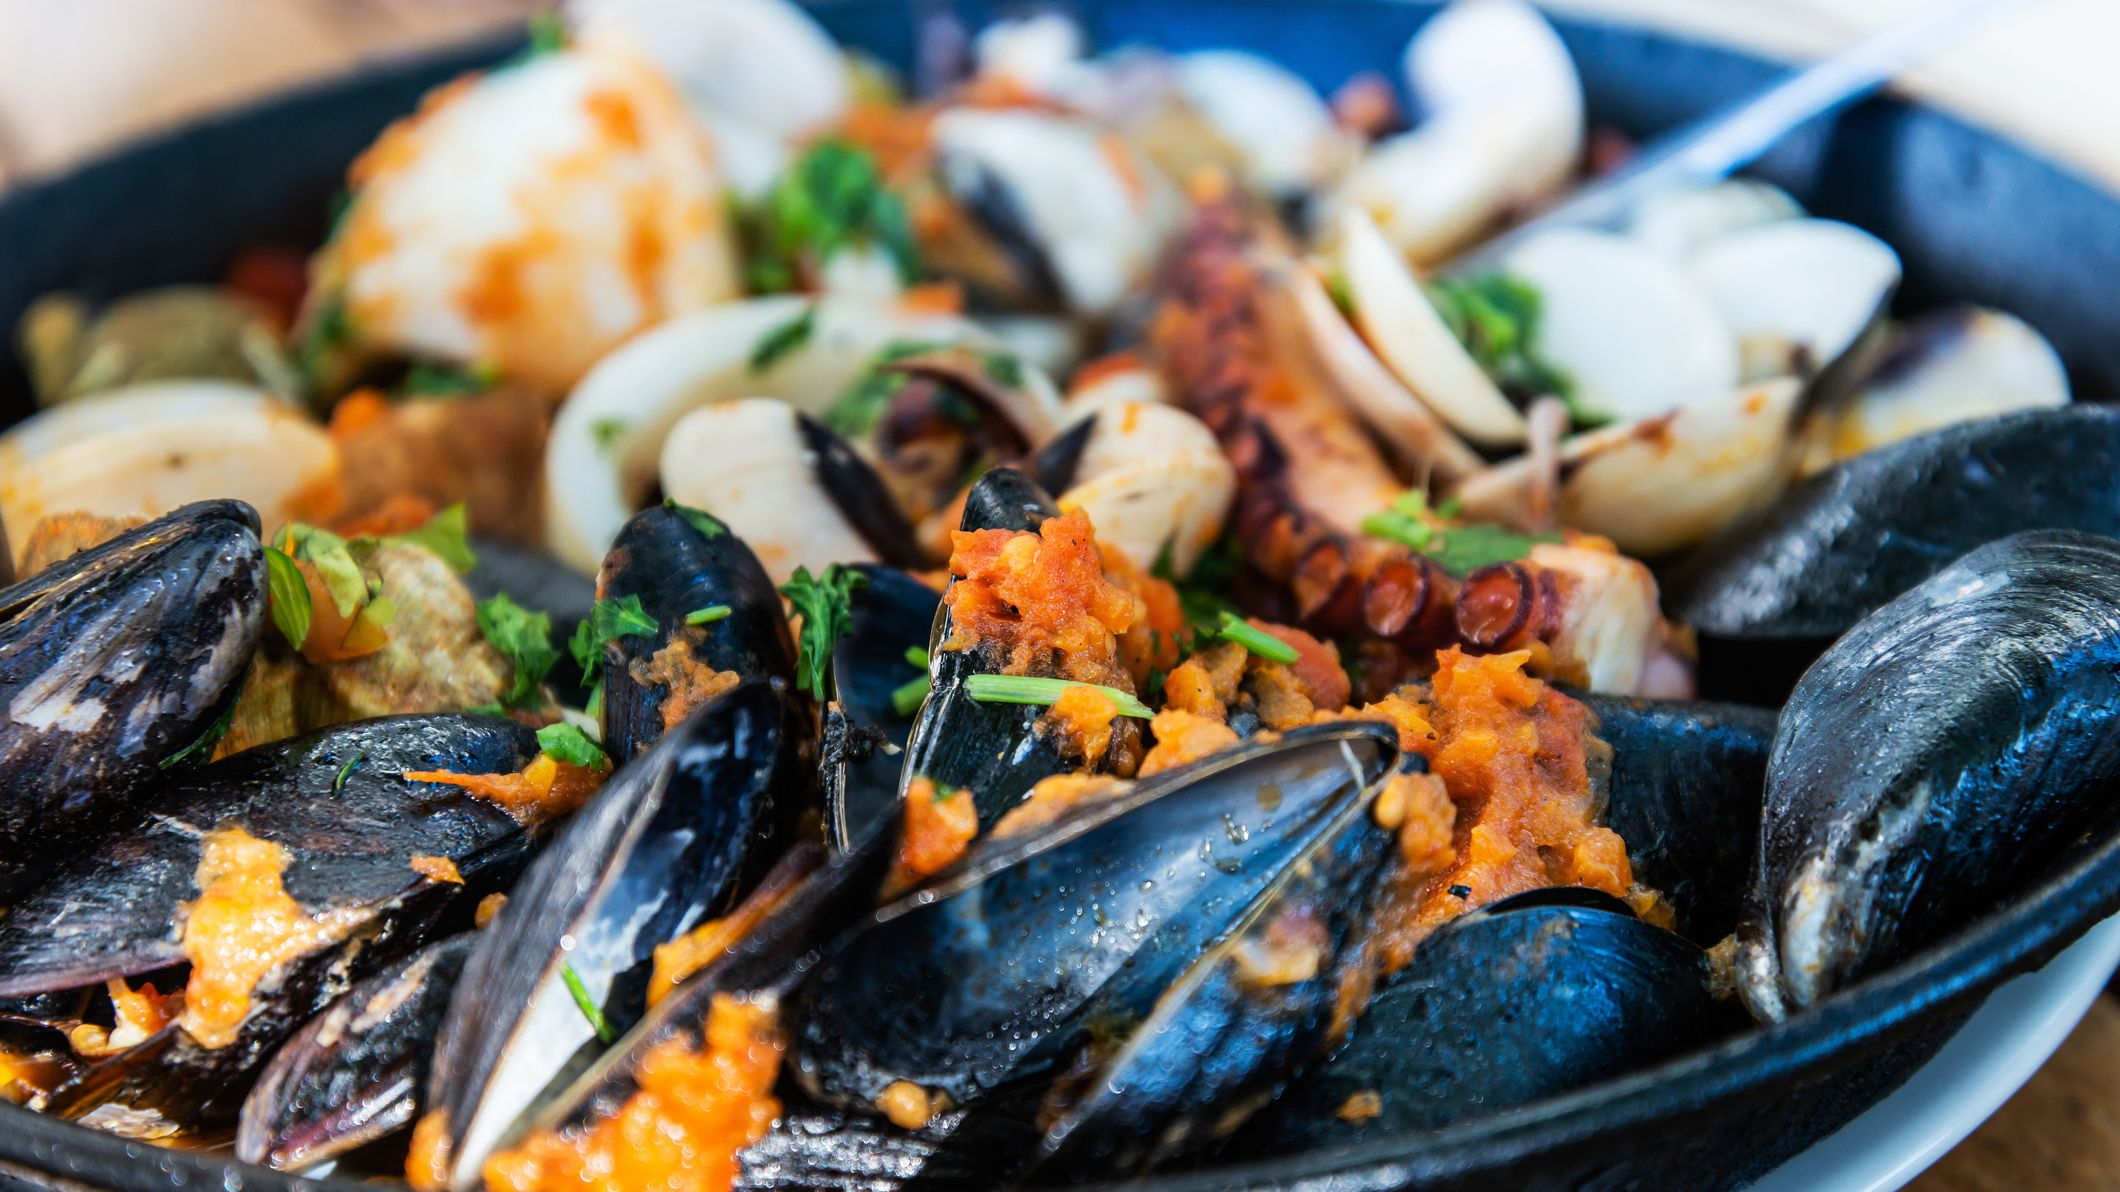 The Best Places to Buy Fresh Seafood Online